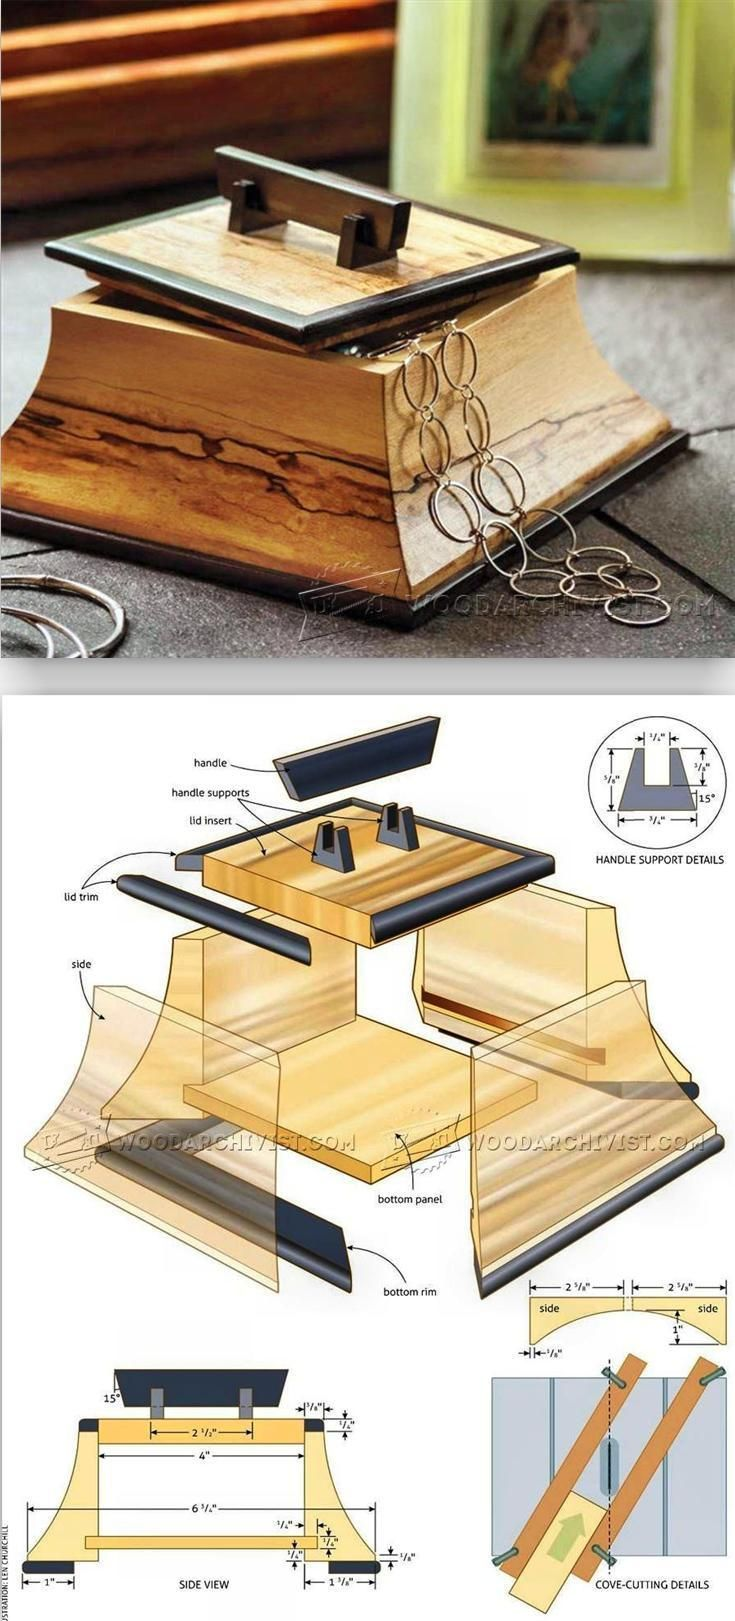 Trinket Box Plans and Projects - Woodworking Plans and Projects | http://WoodArchivist.com